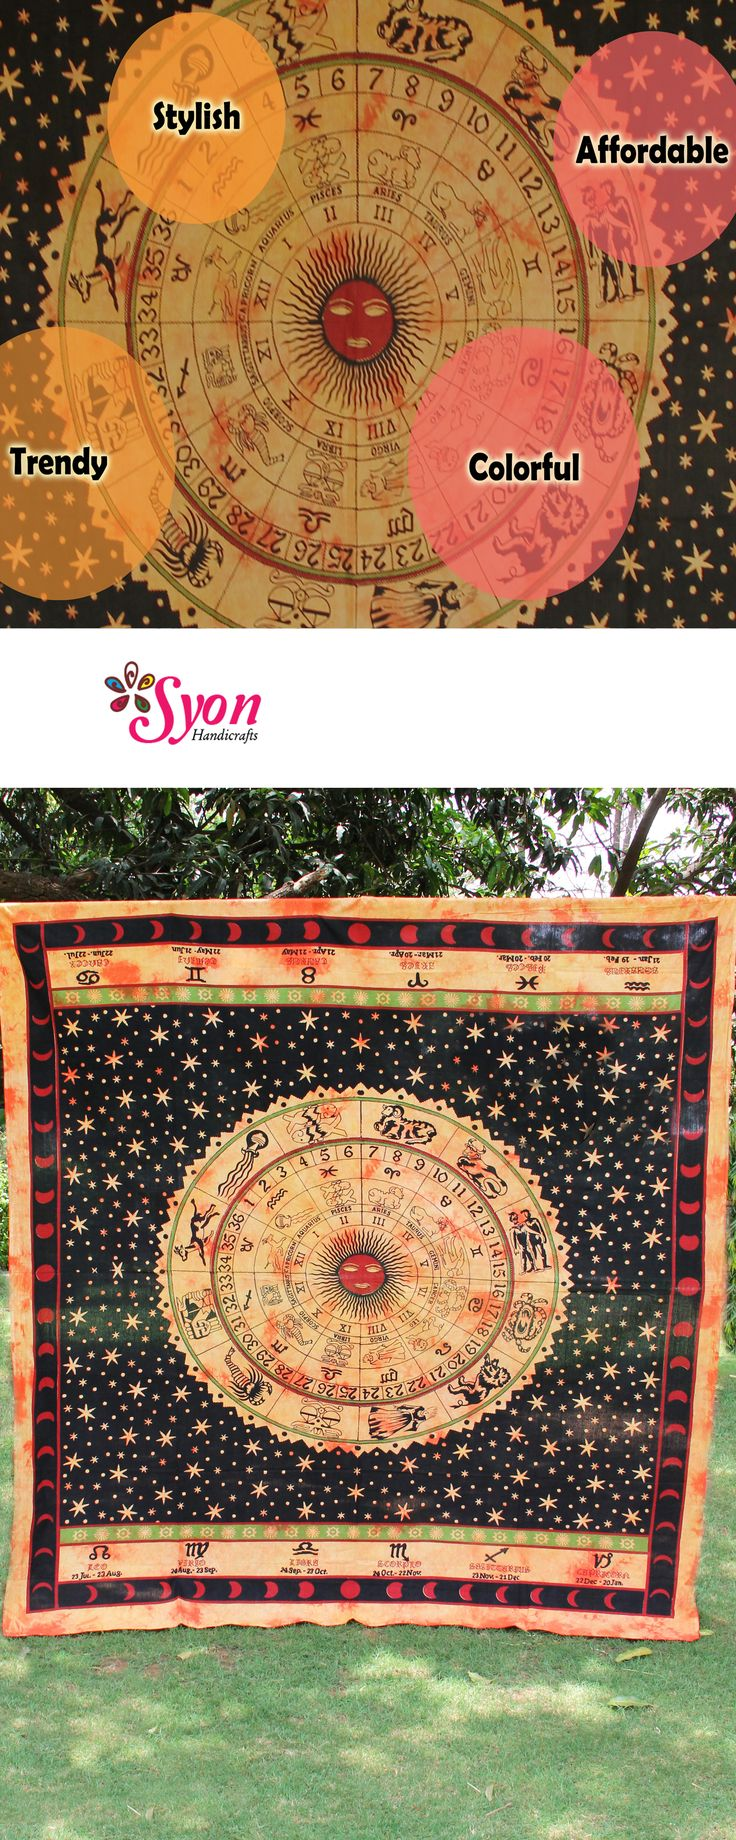 Astro brown tapestry by syon handicrafts !!